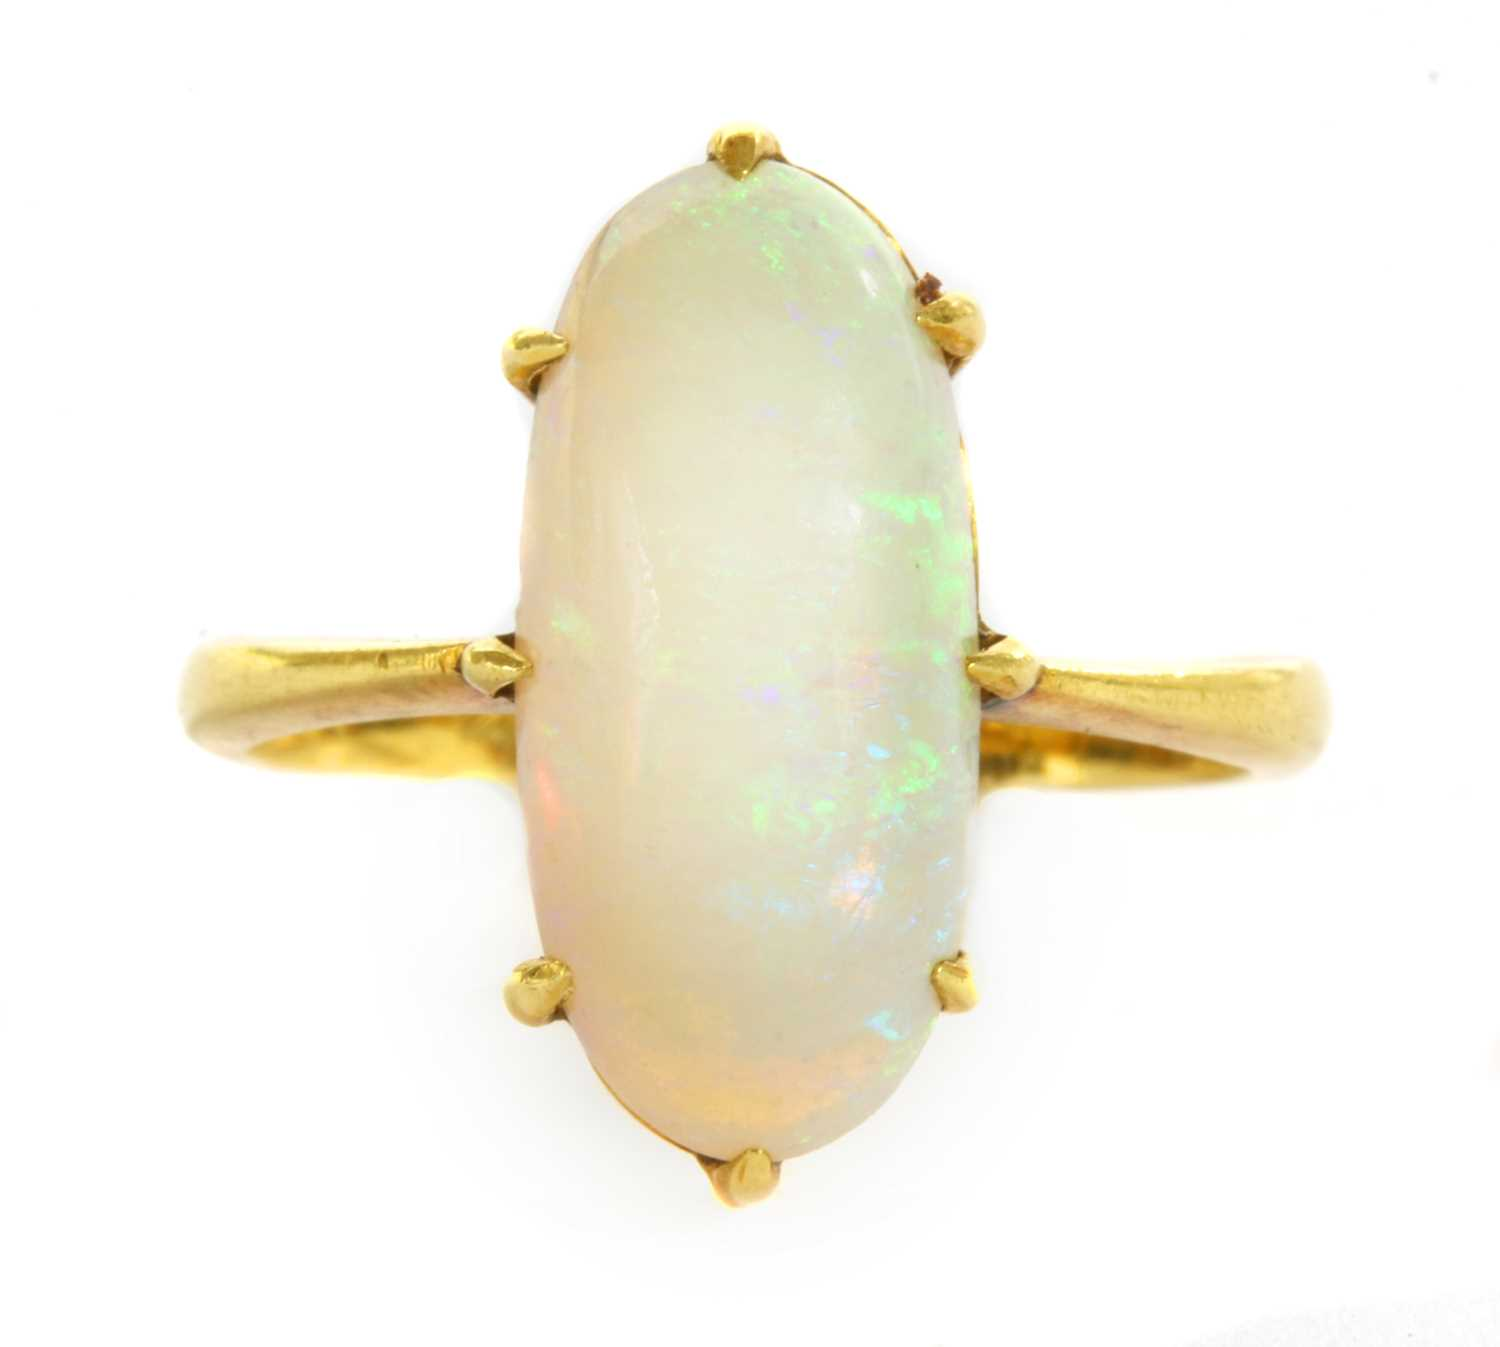 Lot 19 - An Edwardian gold single stone opal ring